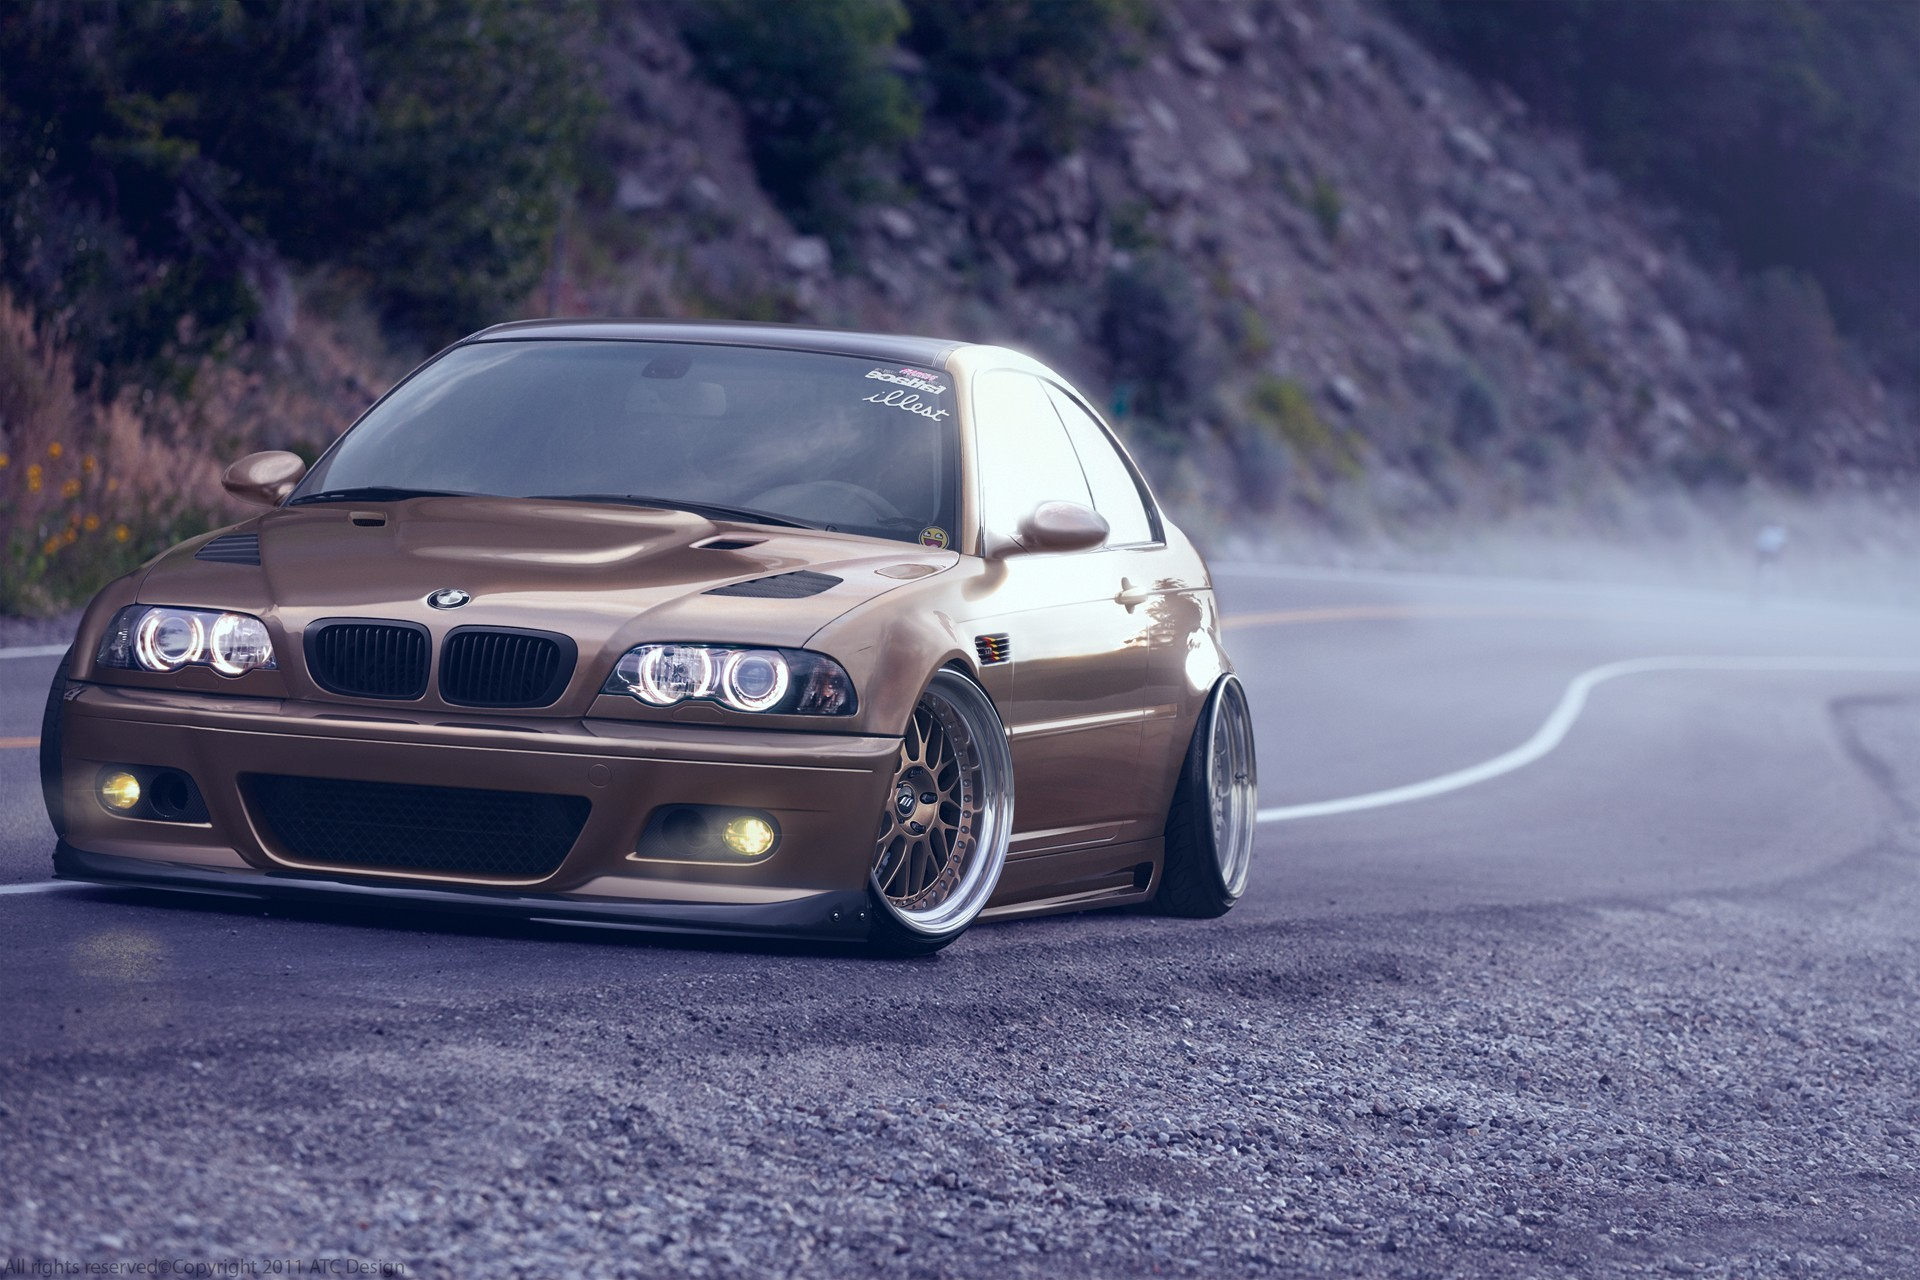 1920x1280 car, BMW, Mist, Road, BMW M3 E46, E46 Wallpapers HD / Desktop and Mobile  Backgrounds